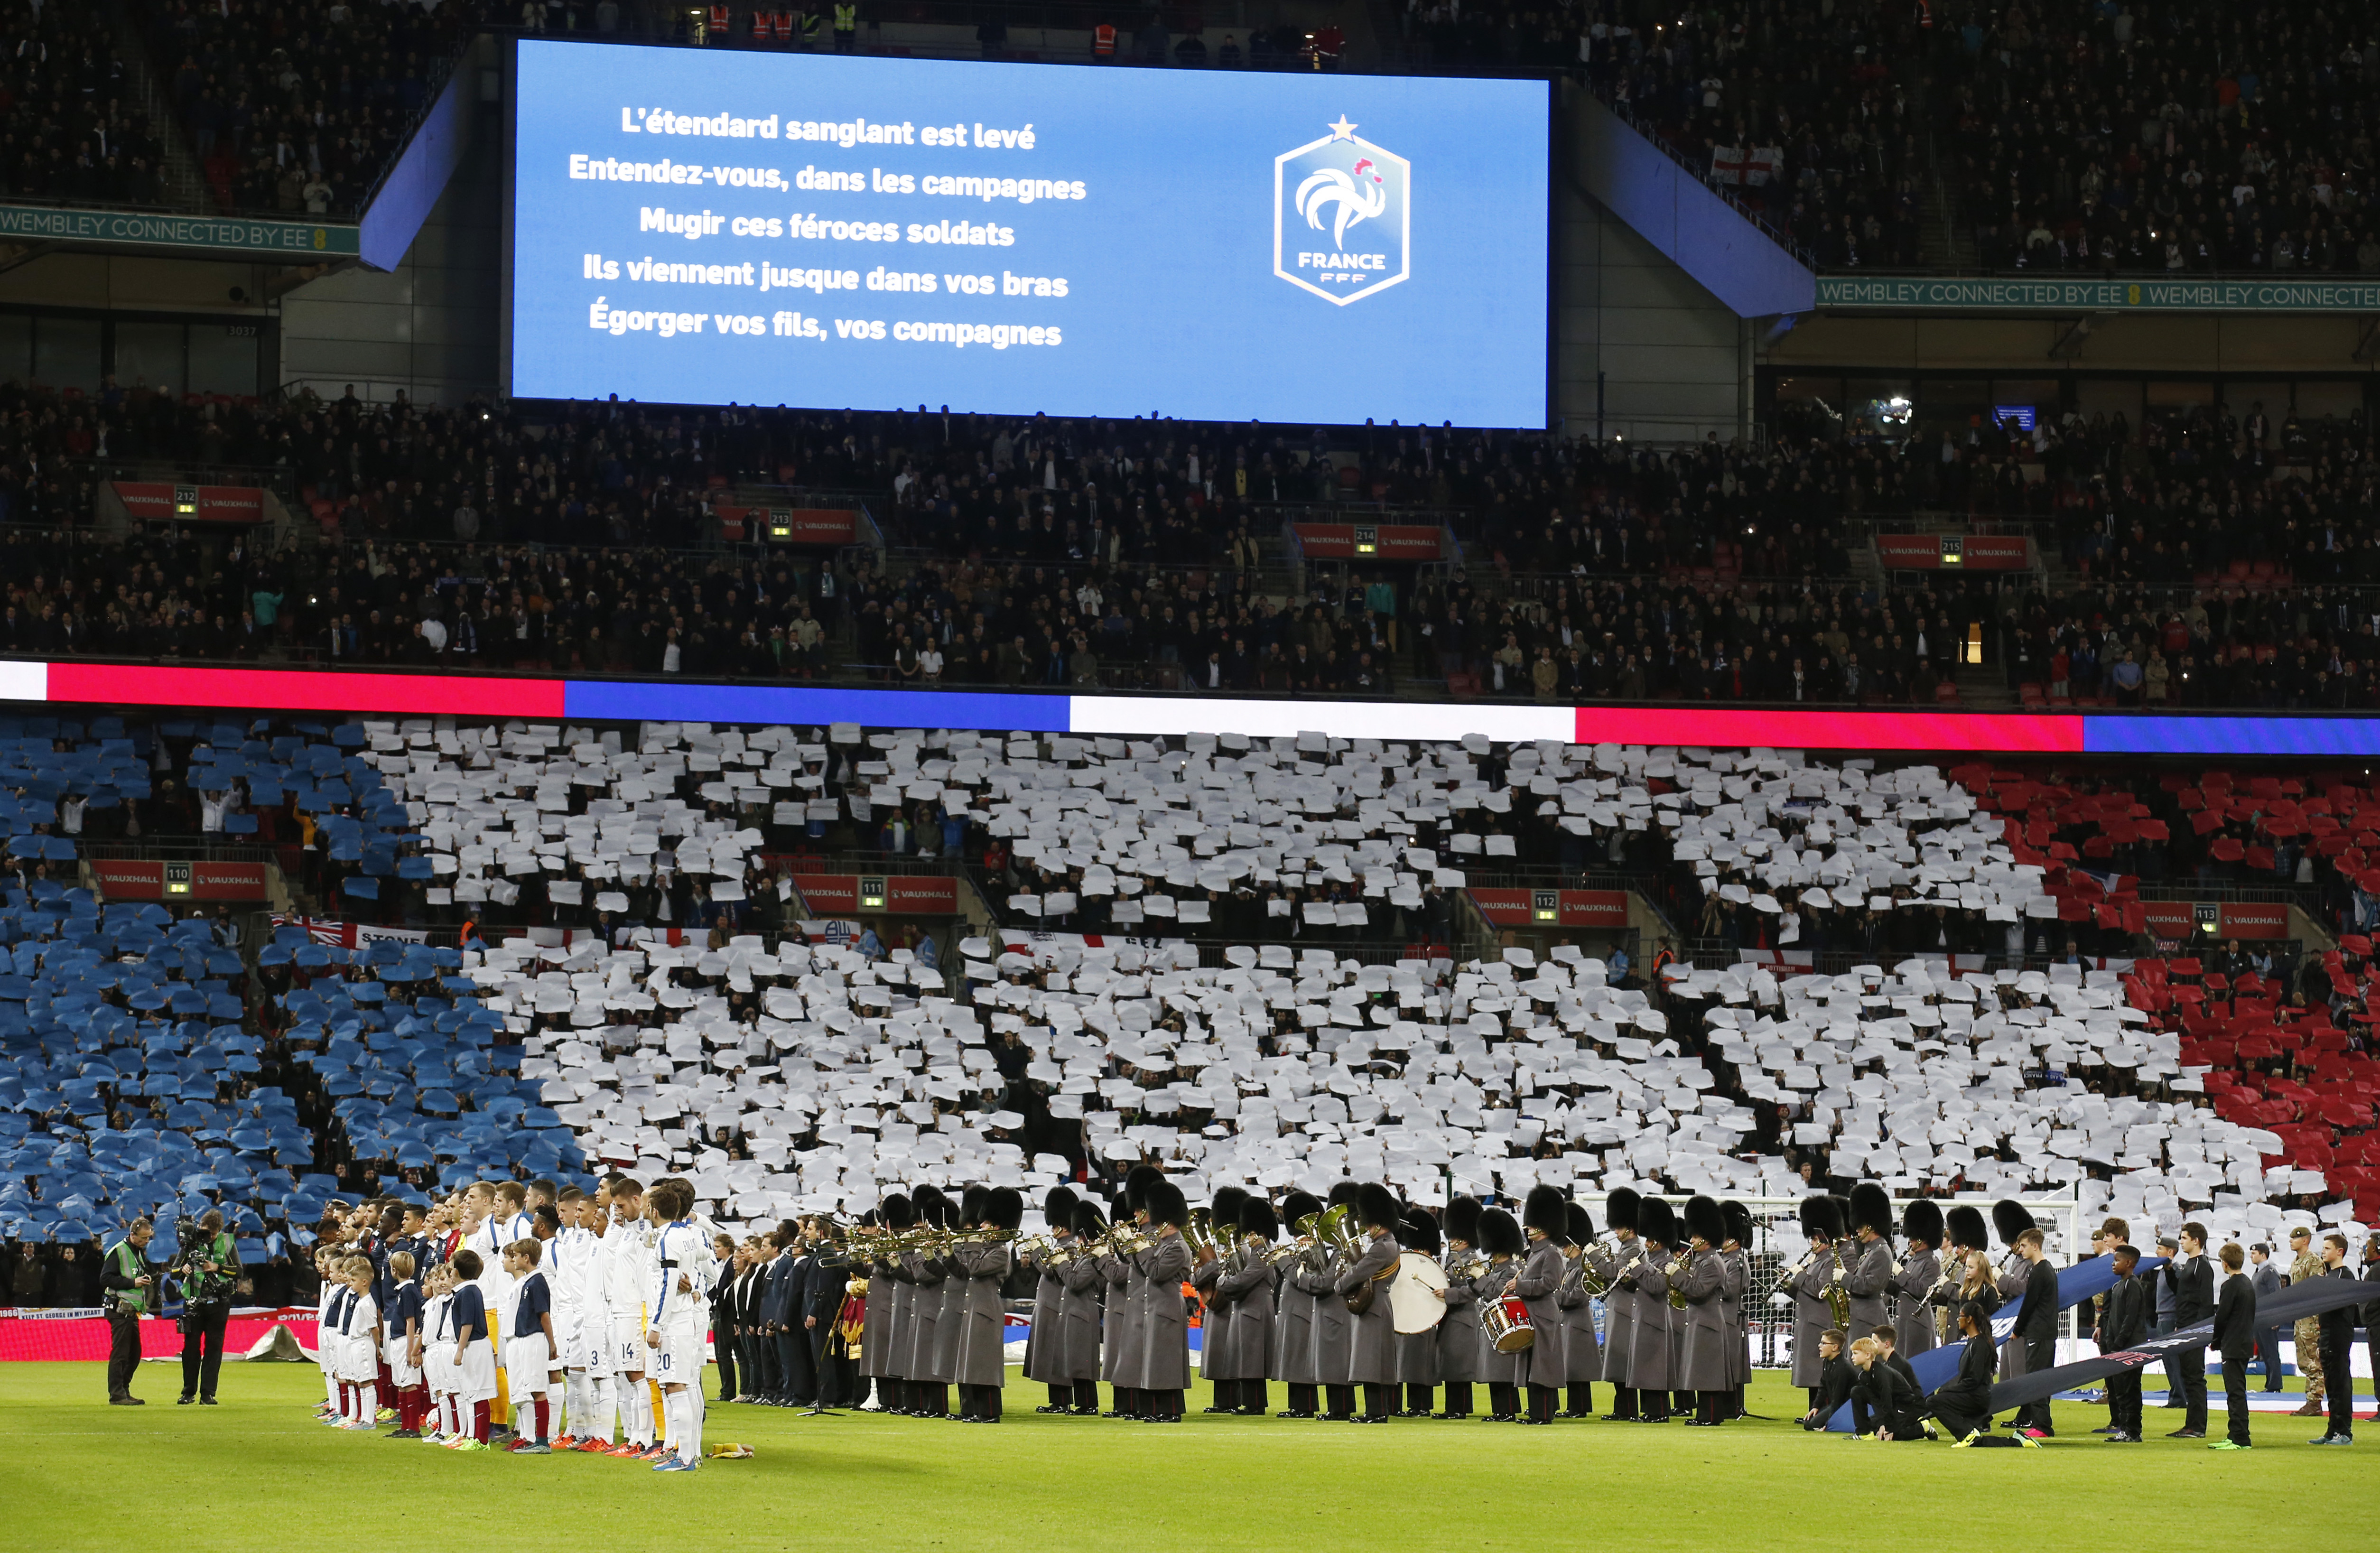 Football - England v France - International Friendly - Wembley Stadium, London, England - 17/11/15 General view before the match Action Images via Reuters / Carl Recine Livepic EDITORIAL USE ONLY.